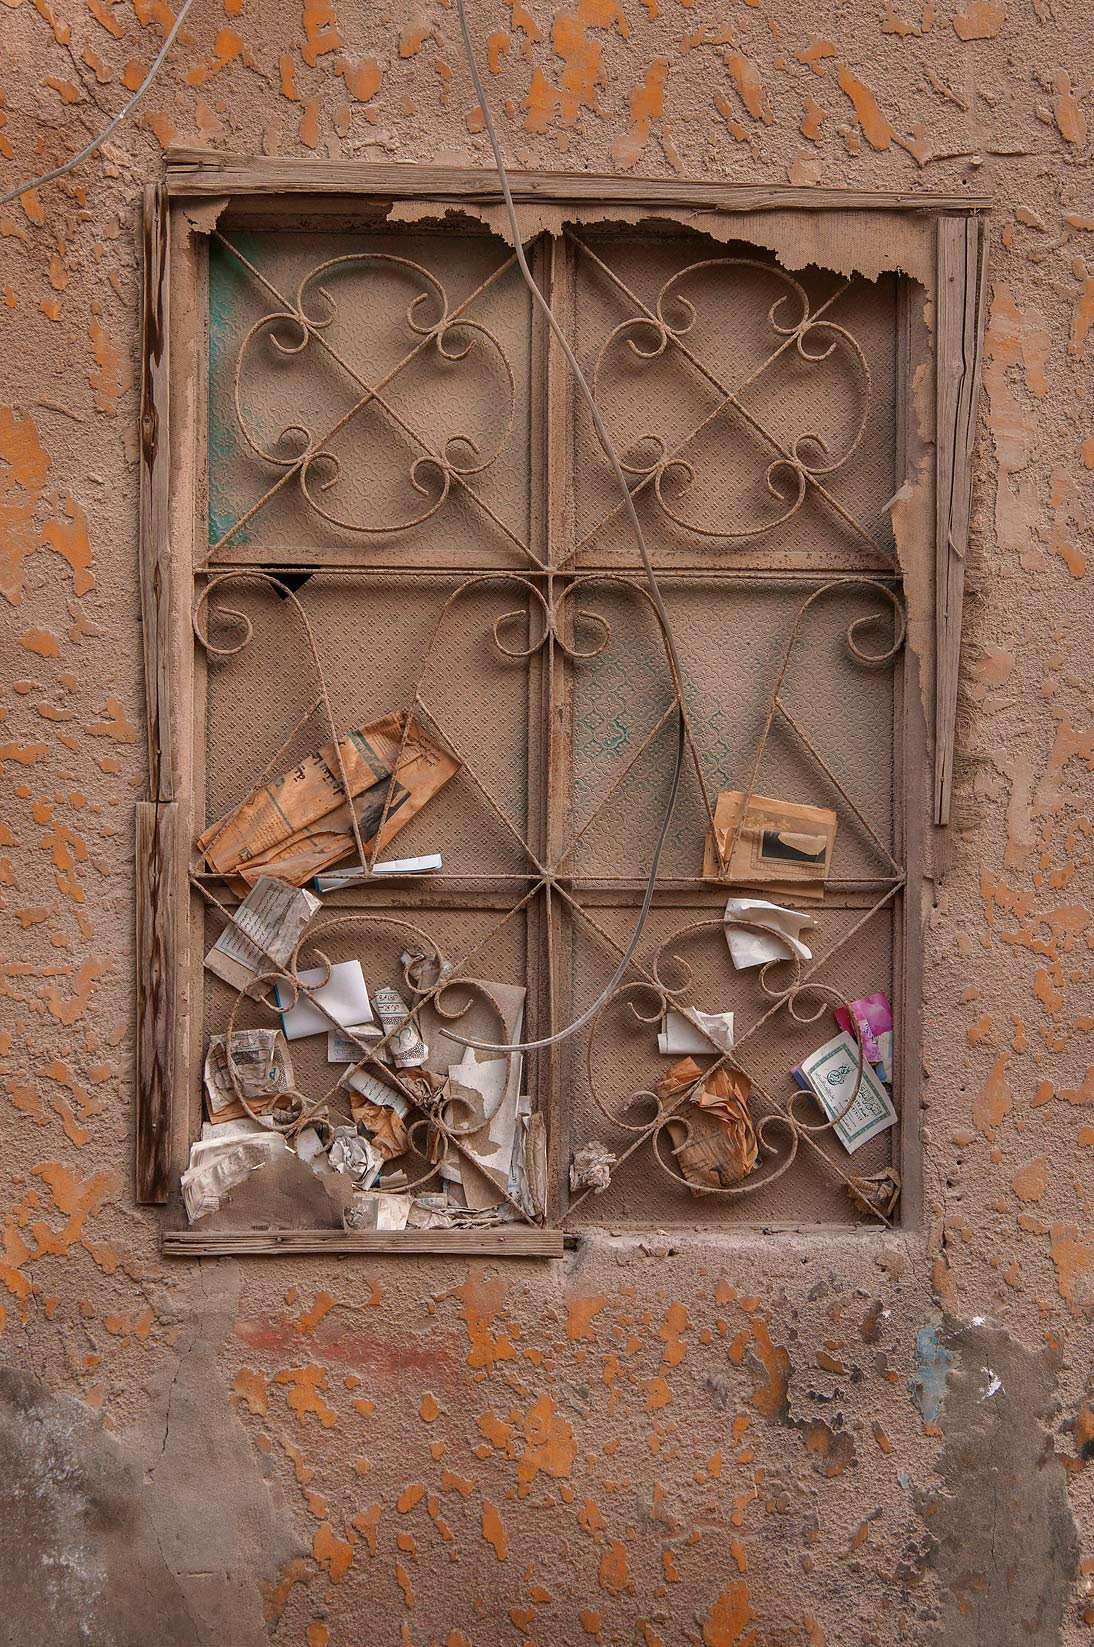 Window near Al Asmakh St., Musheirib area. Doha, Qatar